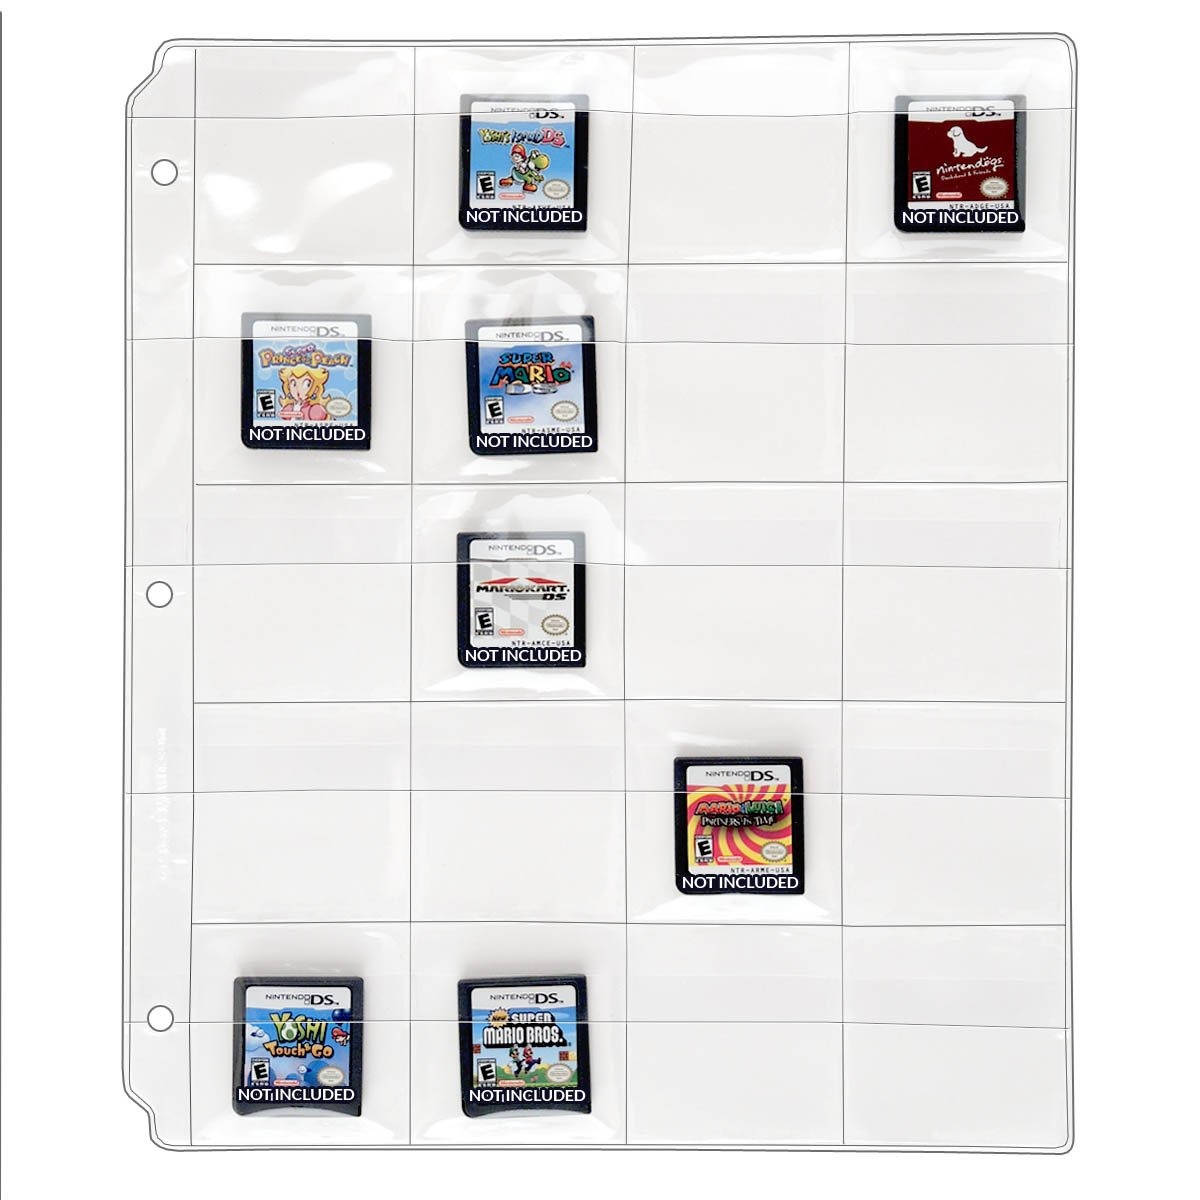 StoreSMART - 20 Pocket 3-Ring Binder Pages with Flaps - for Video Game Cards/Cartridges - 100-Pack - VH1173F-GAME-100